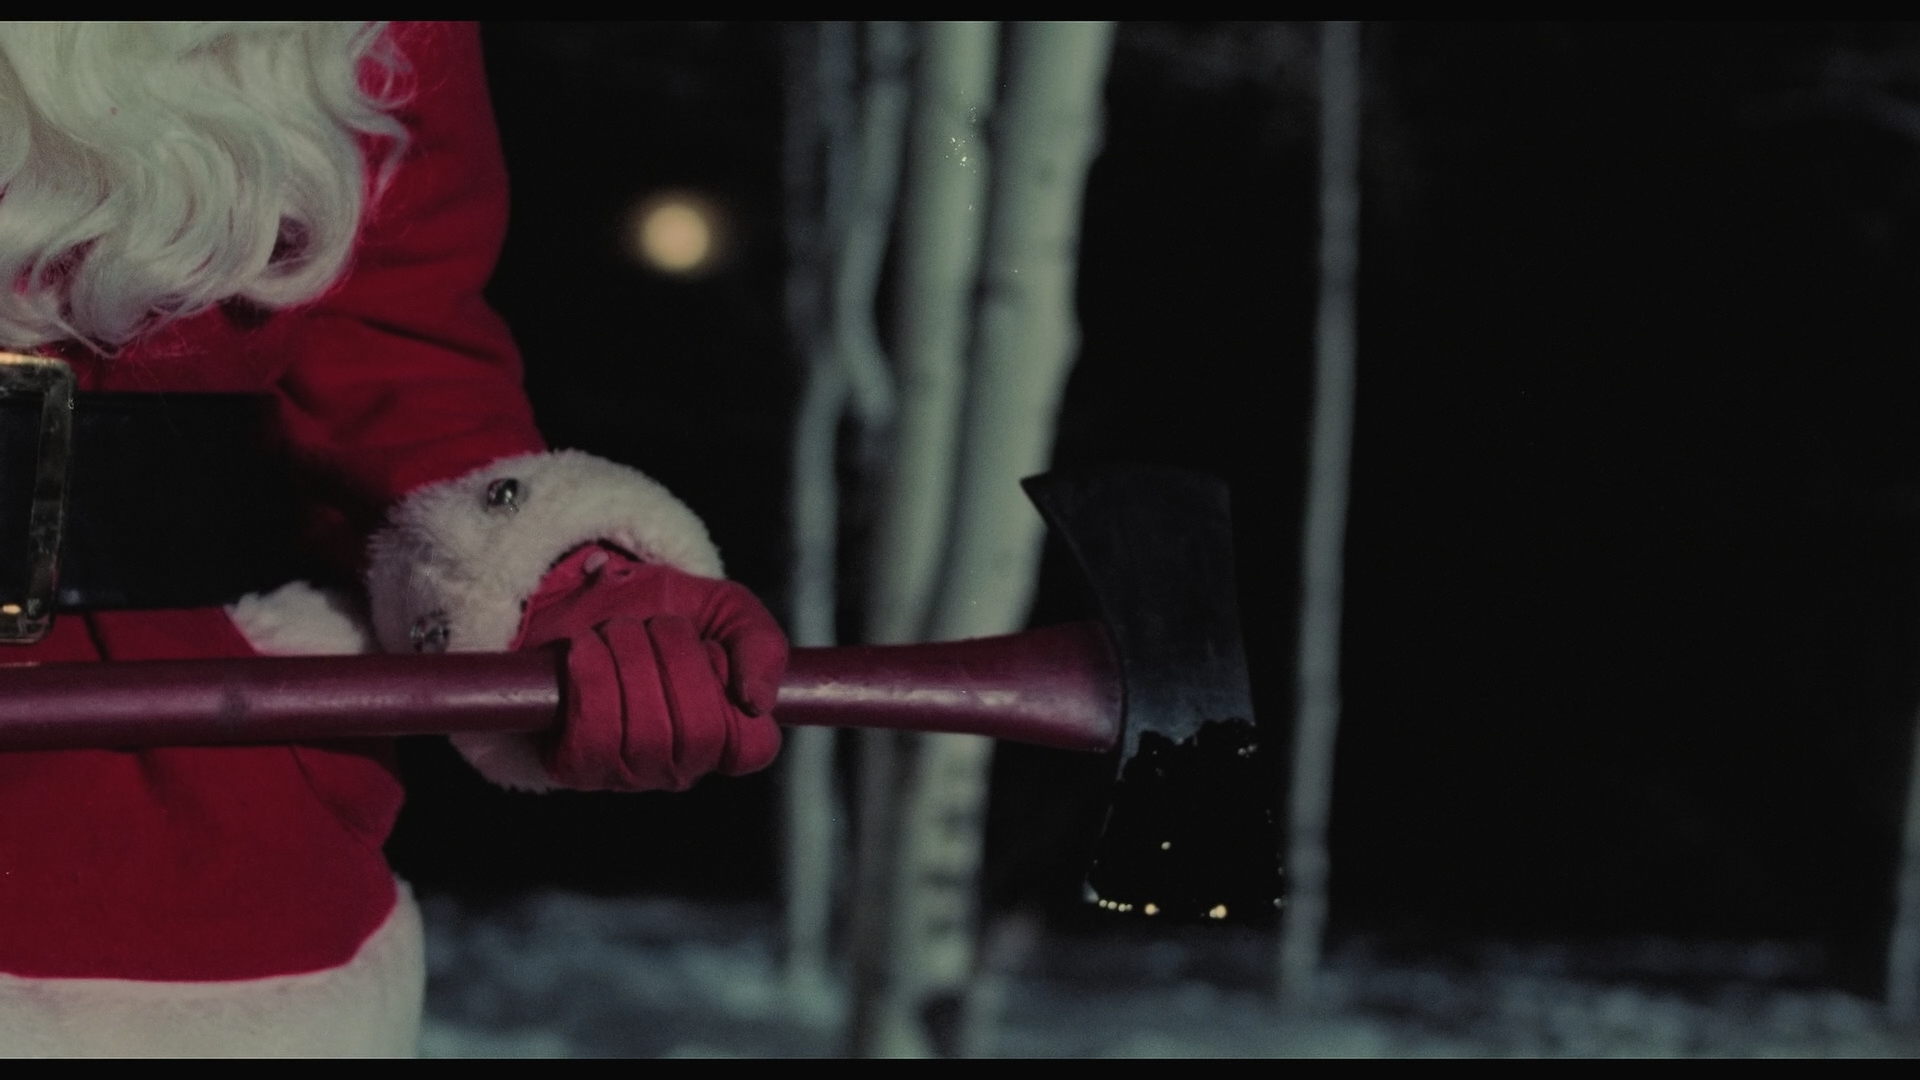 Silent Night, Deadly Night Part 2 Blu-ray Review - DoBlu com